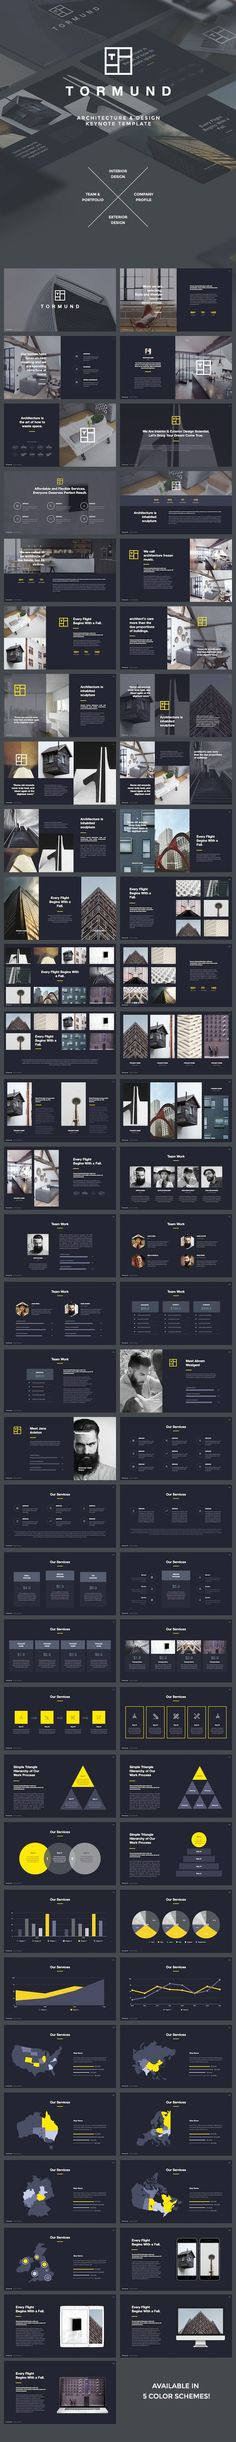 Thormund - Design & Portfolio Keynote Template